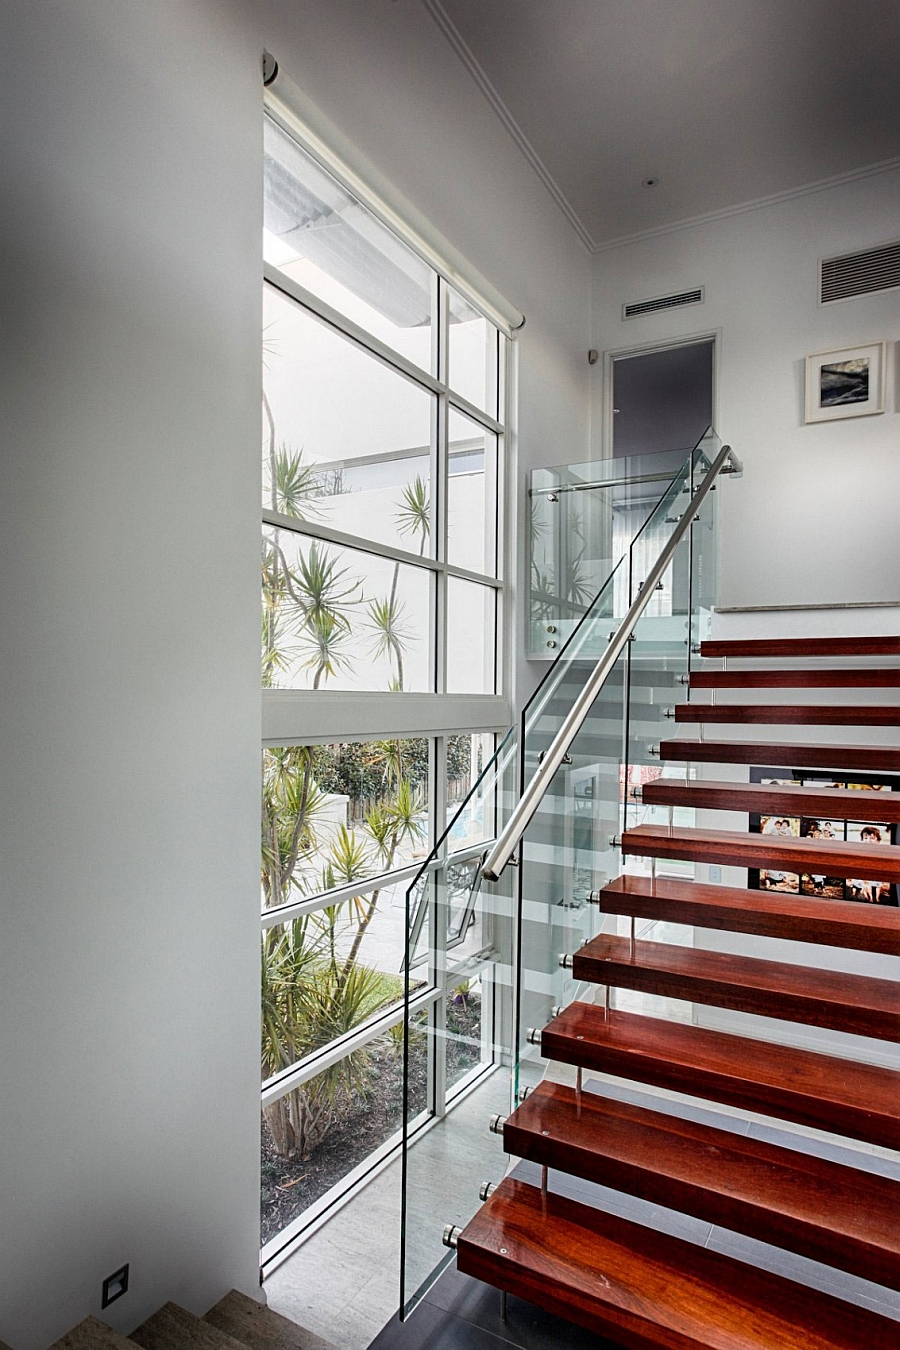 Large windows help bring in natural light